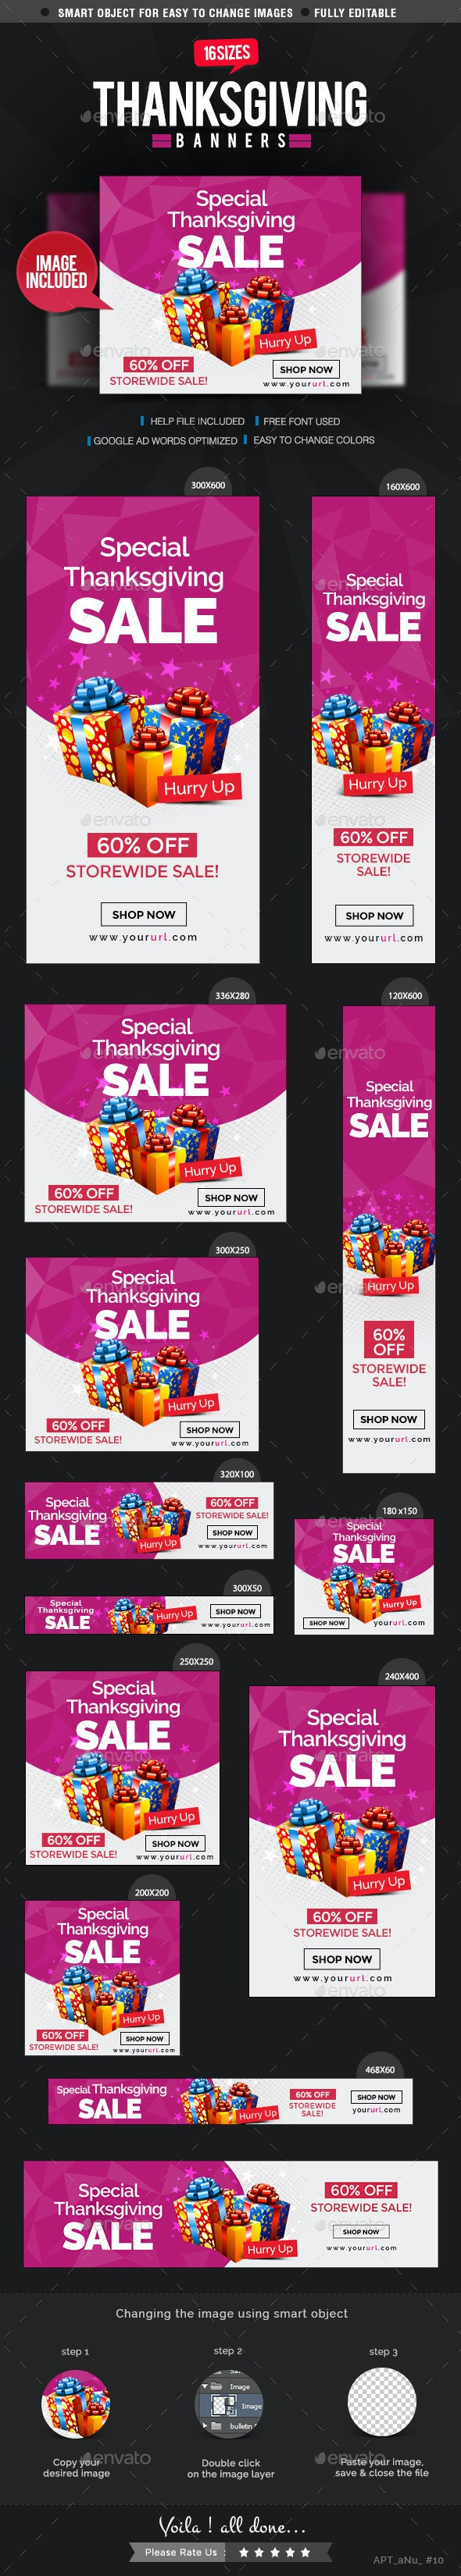 Thanksgiving Web Banner Set - Banners & Ads Web Elements